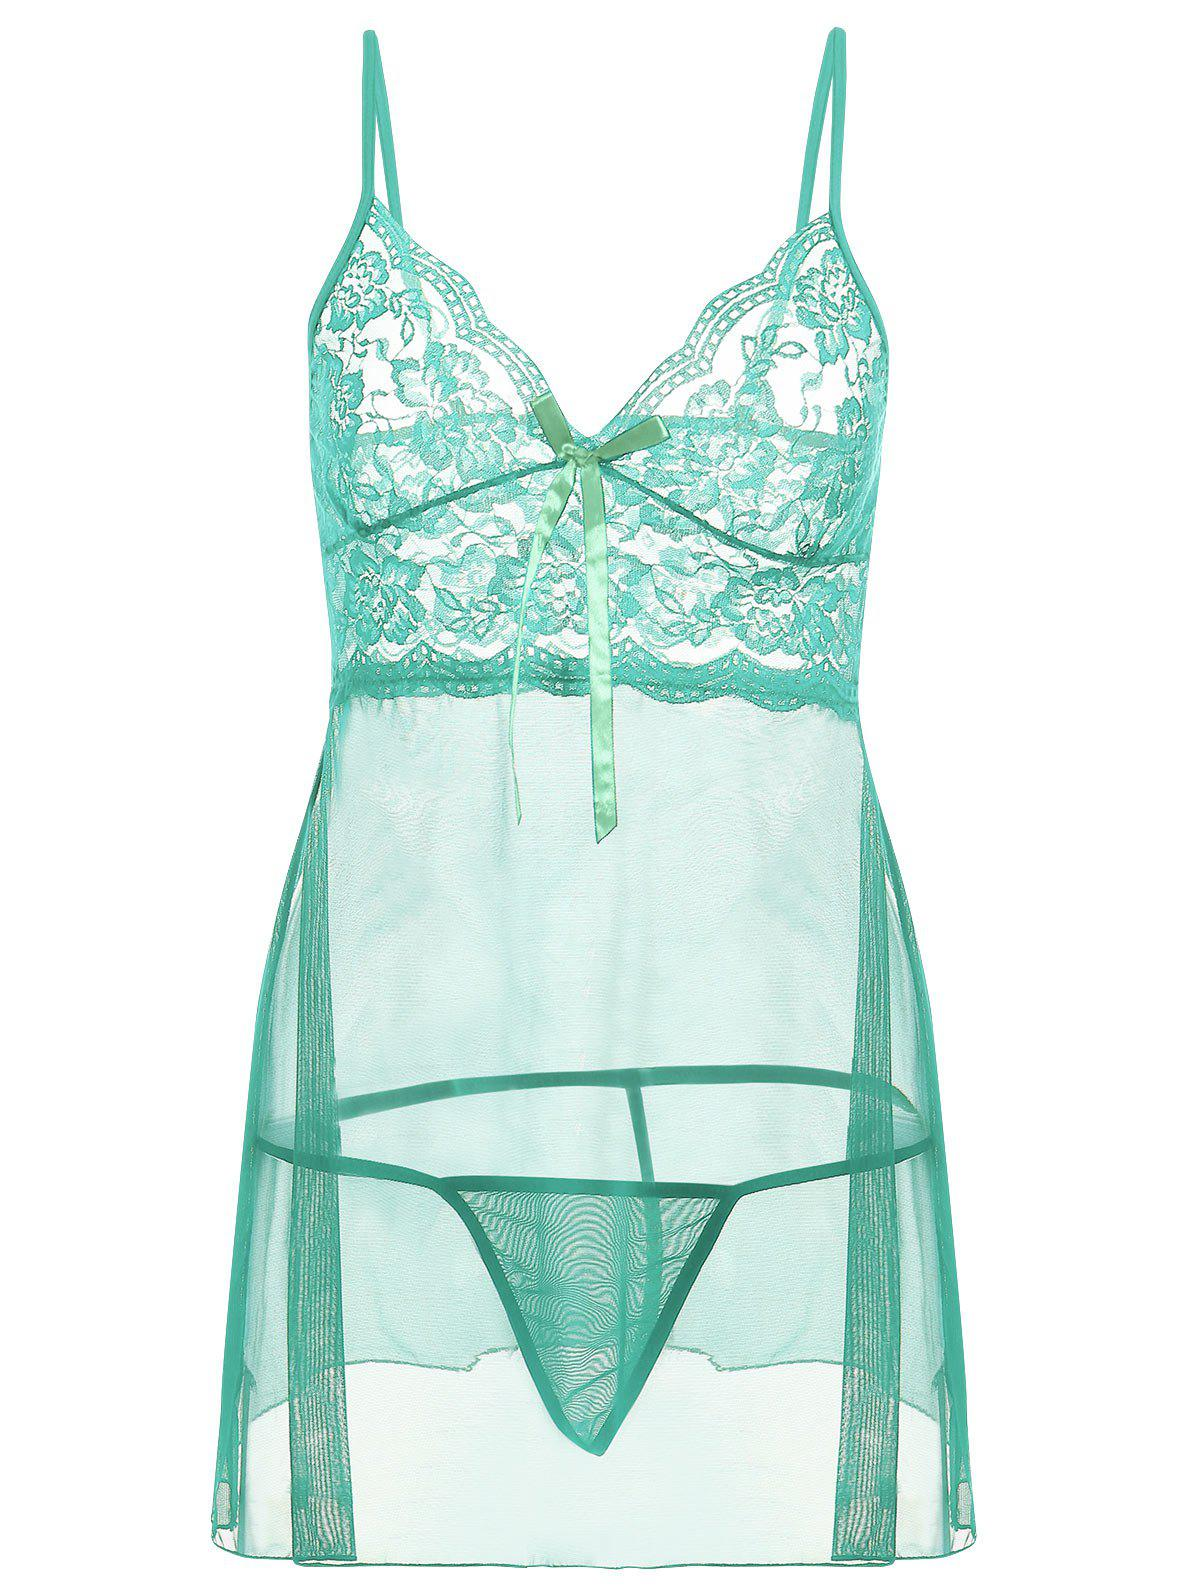 Robe de Nuit Transparente  avec Mailles en Slip - LIGHT GREEN 4XL